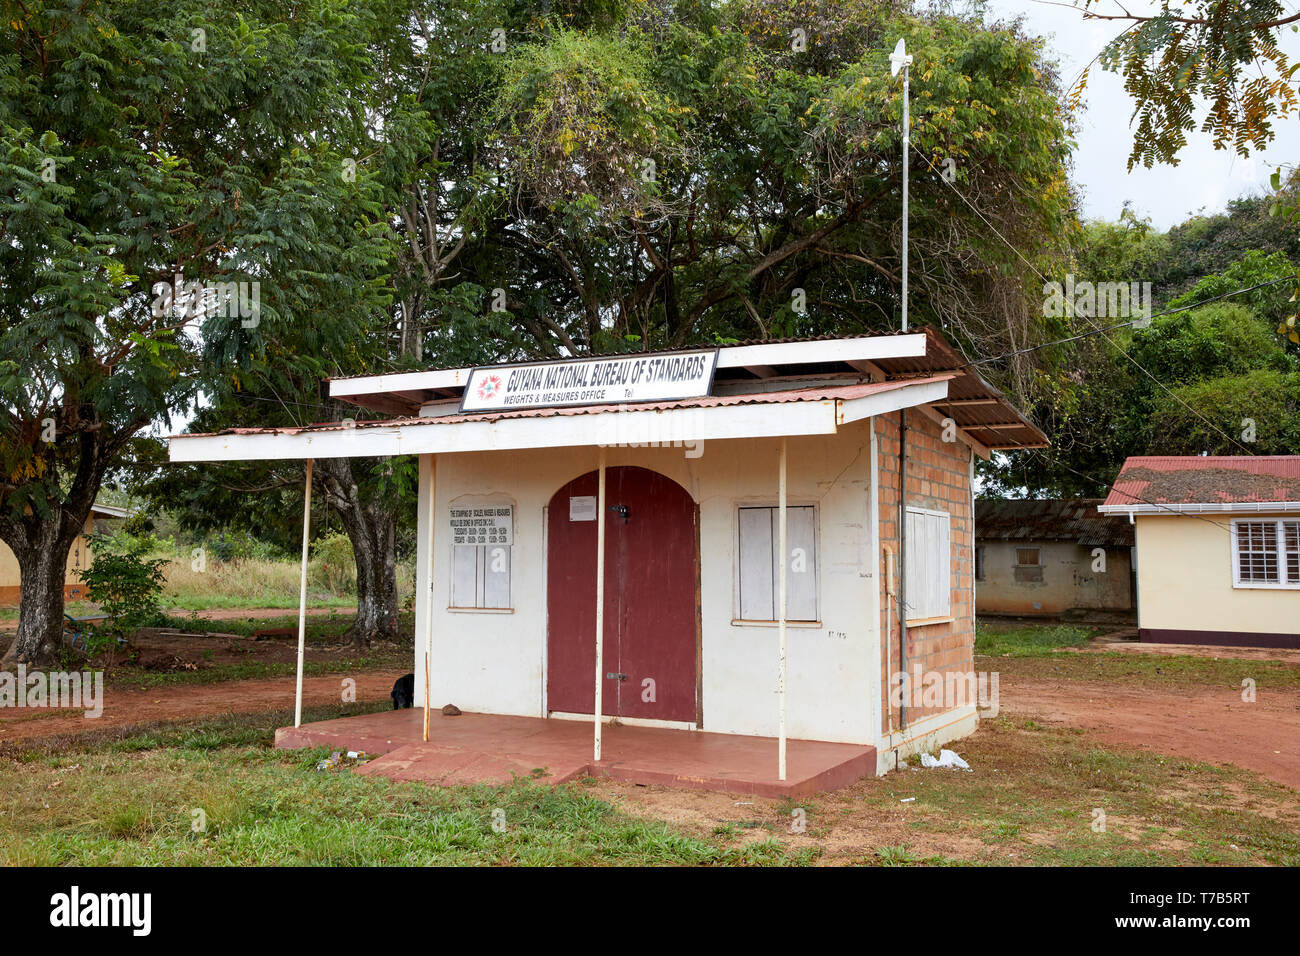 Guyana National Bureau of Standards in Lethem Guyana South America - Stock Image